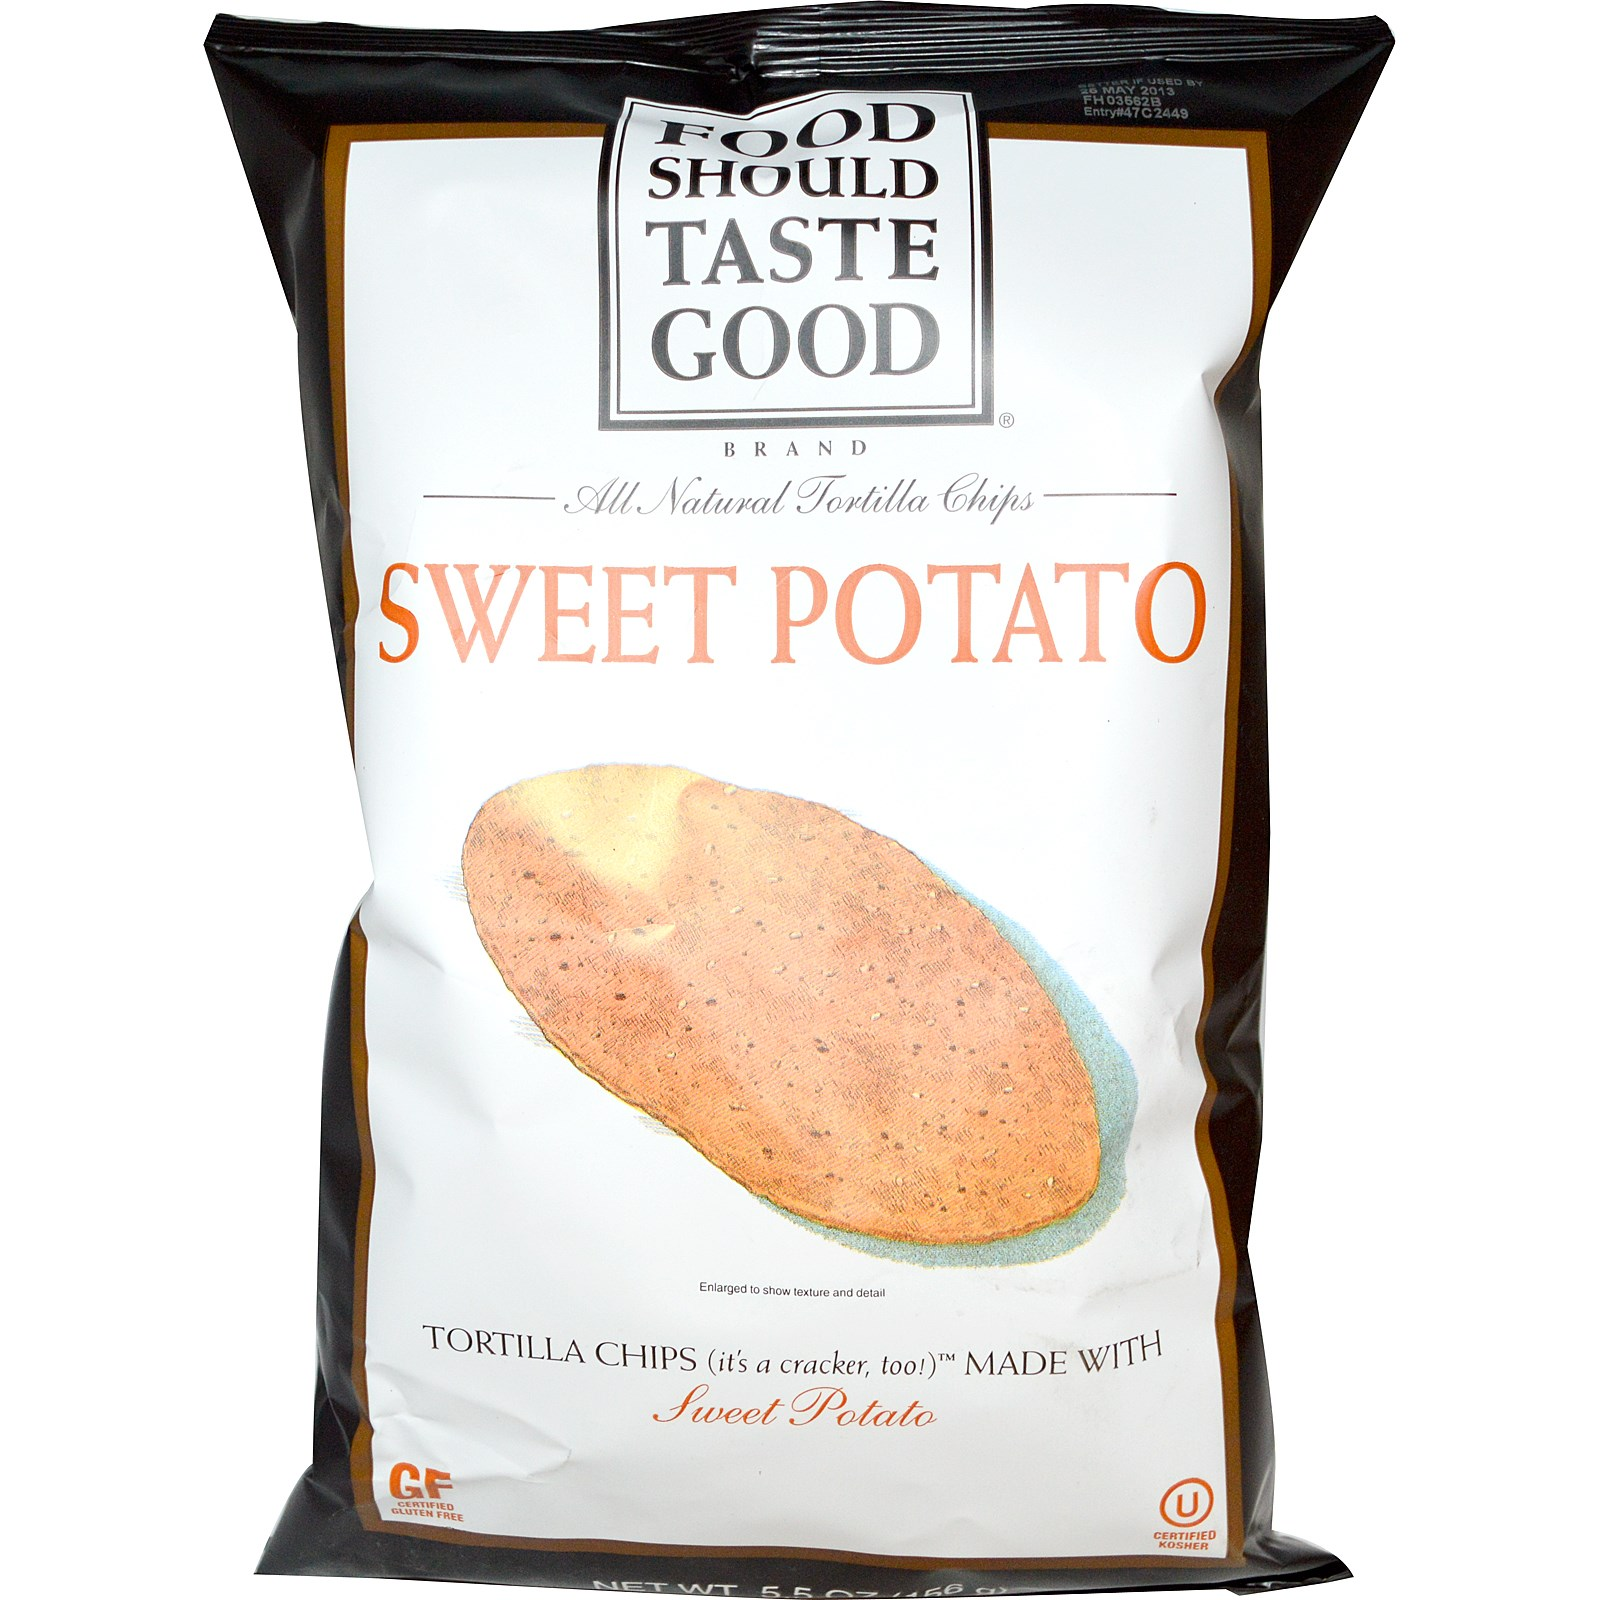 Food Should Taste Good, All Natural Tortilla Chips, Sweet Potato, 5.5 oz (pack of 6)